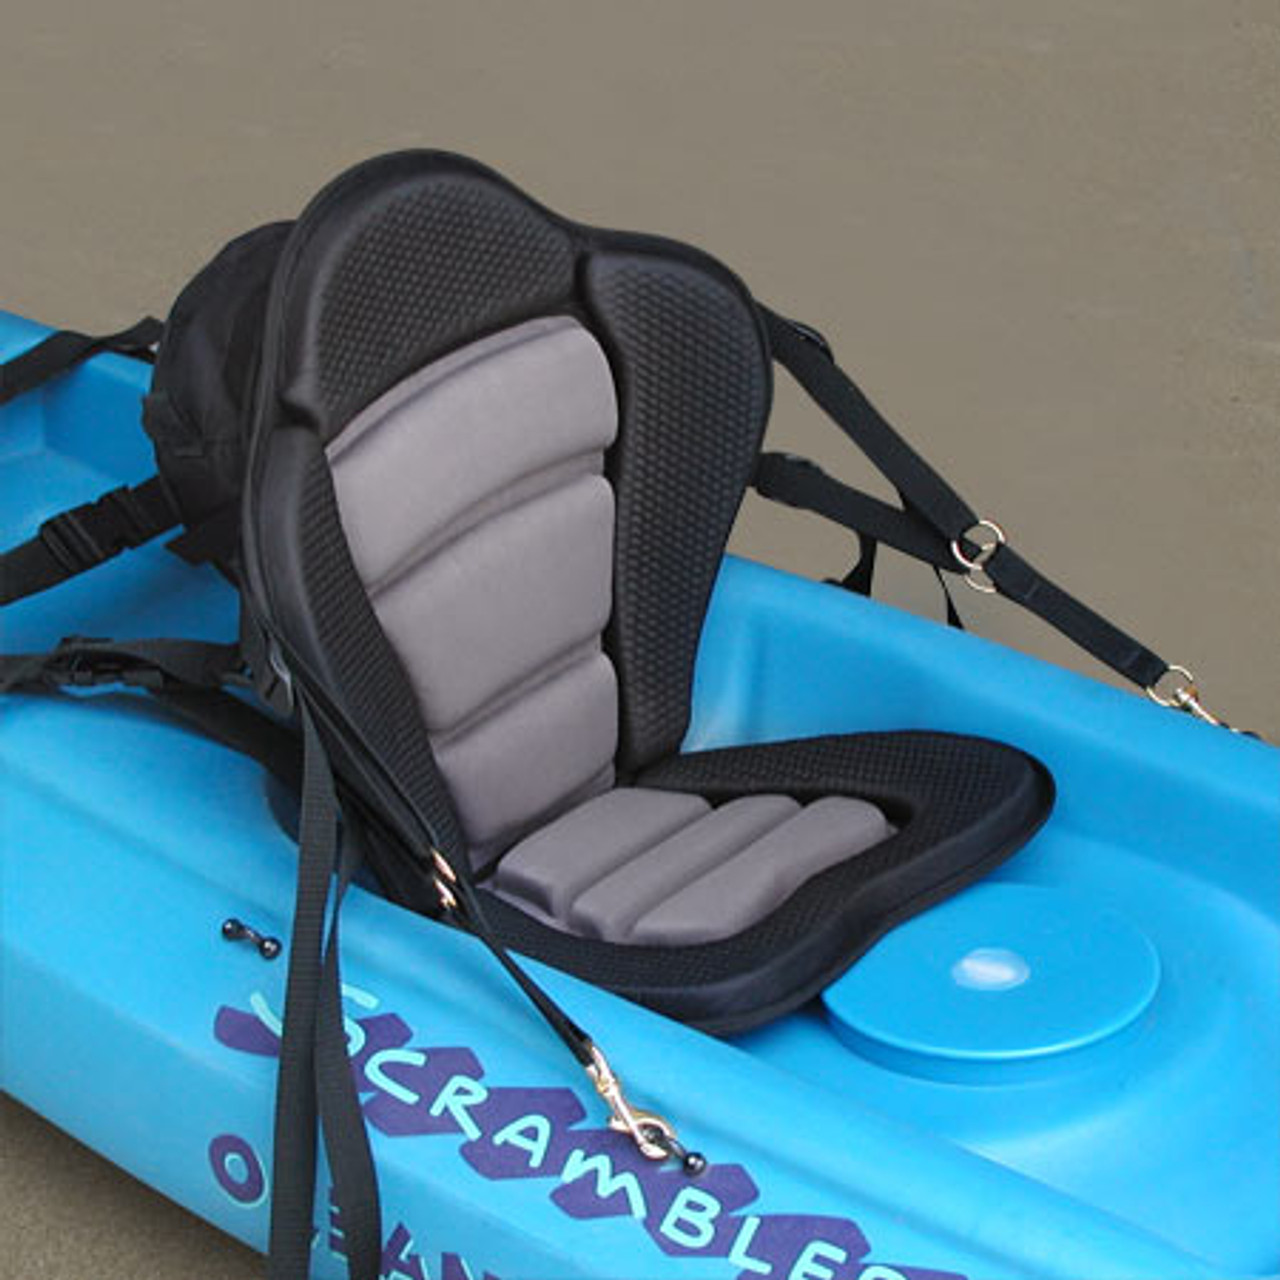 http://www.surftosummit.com/images/products/KGT310p2.jpg